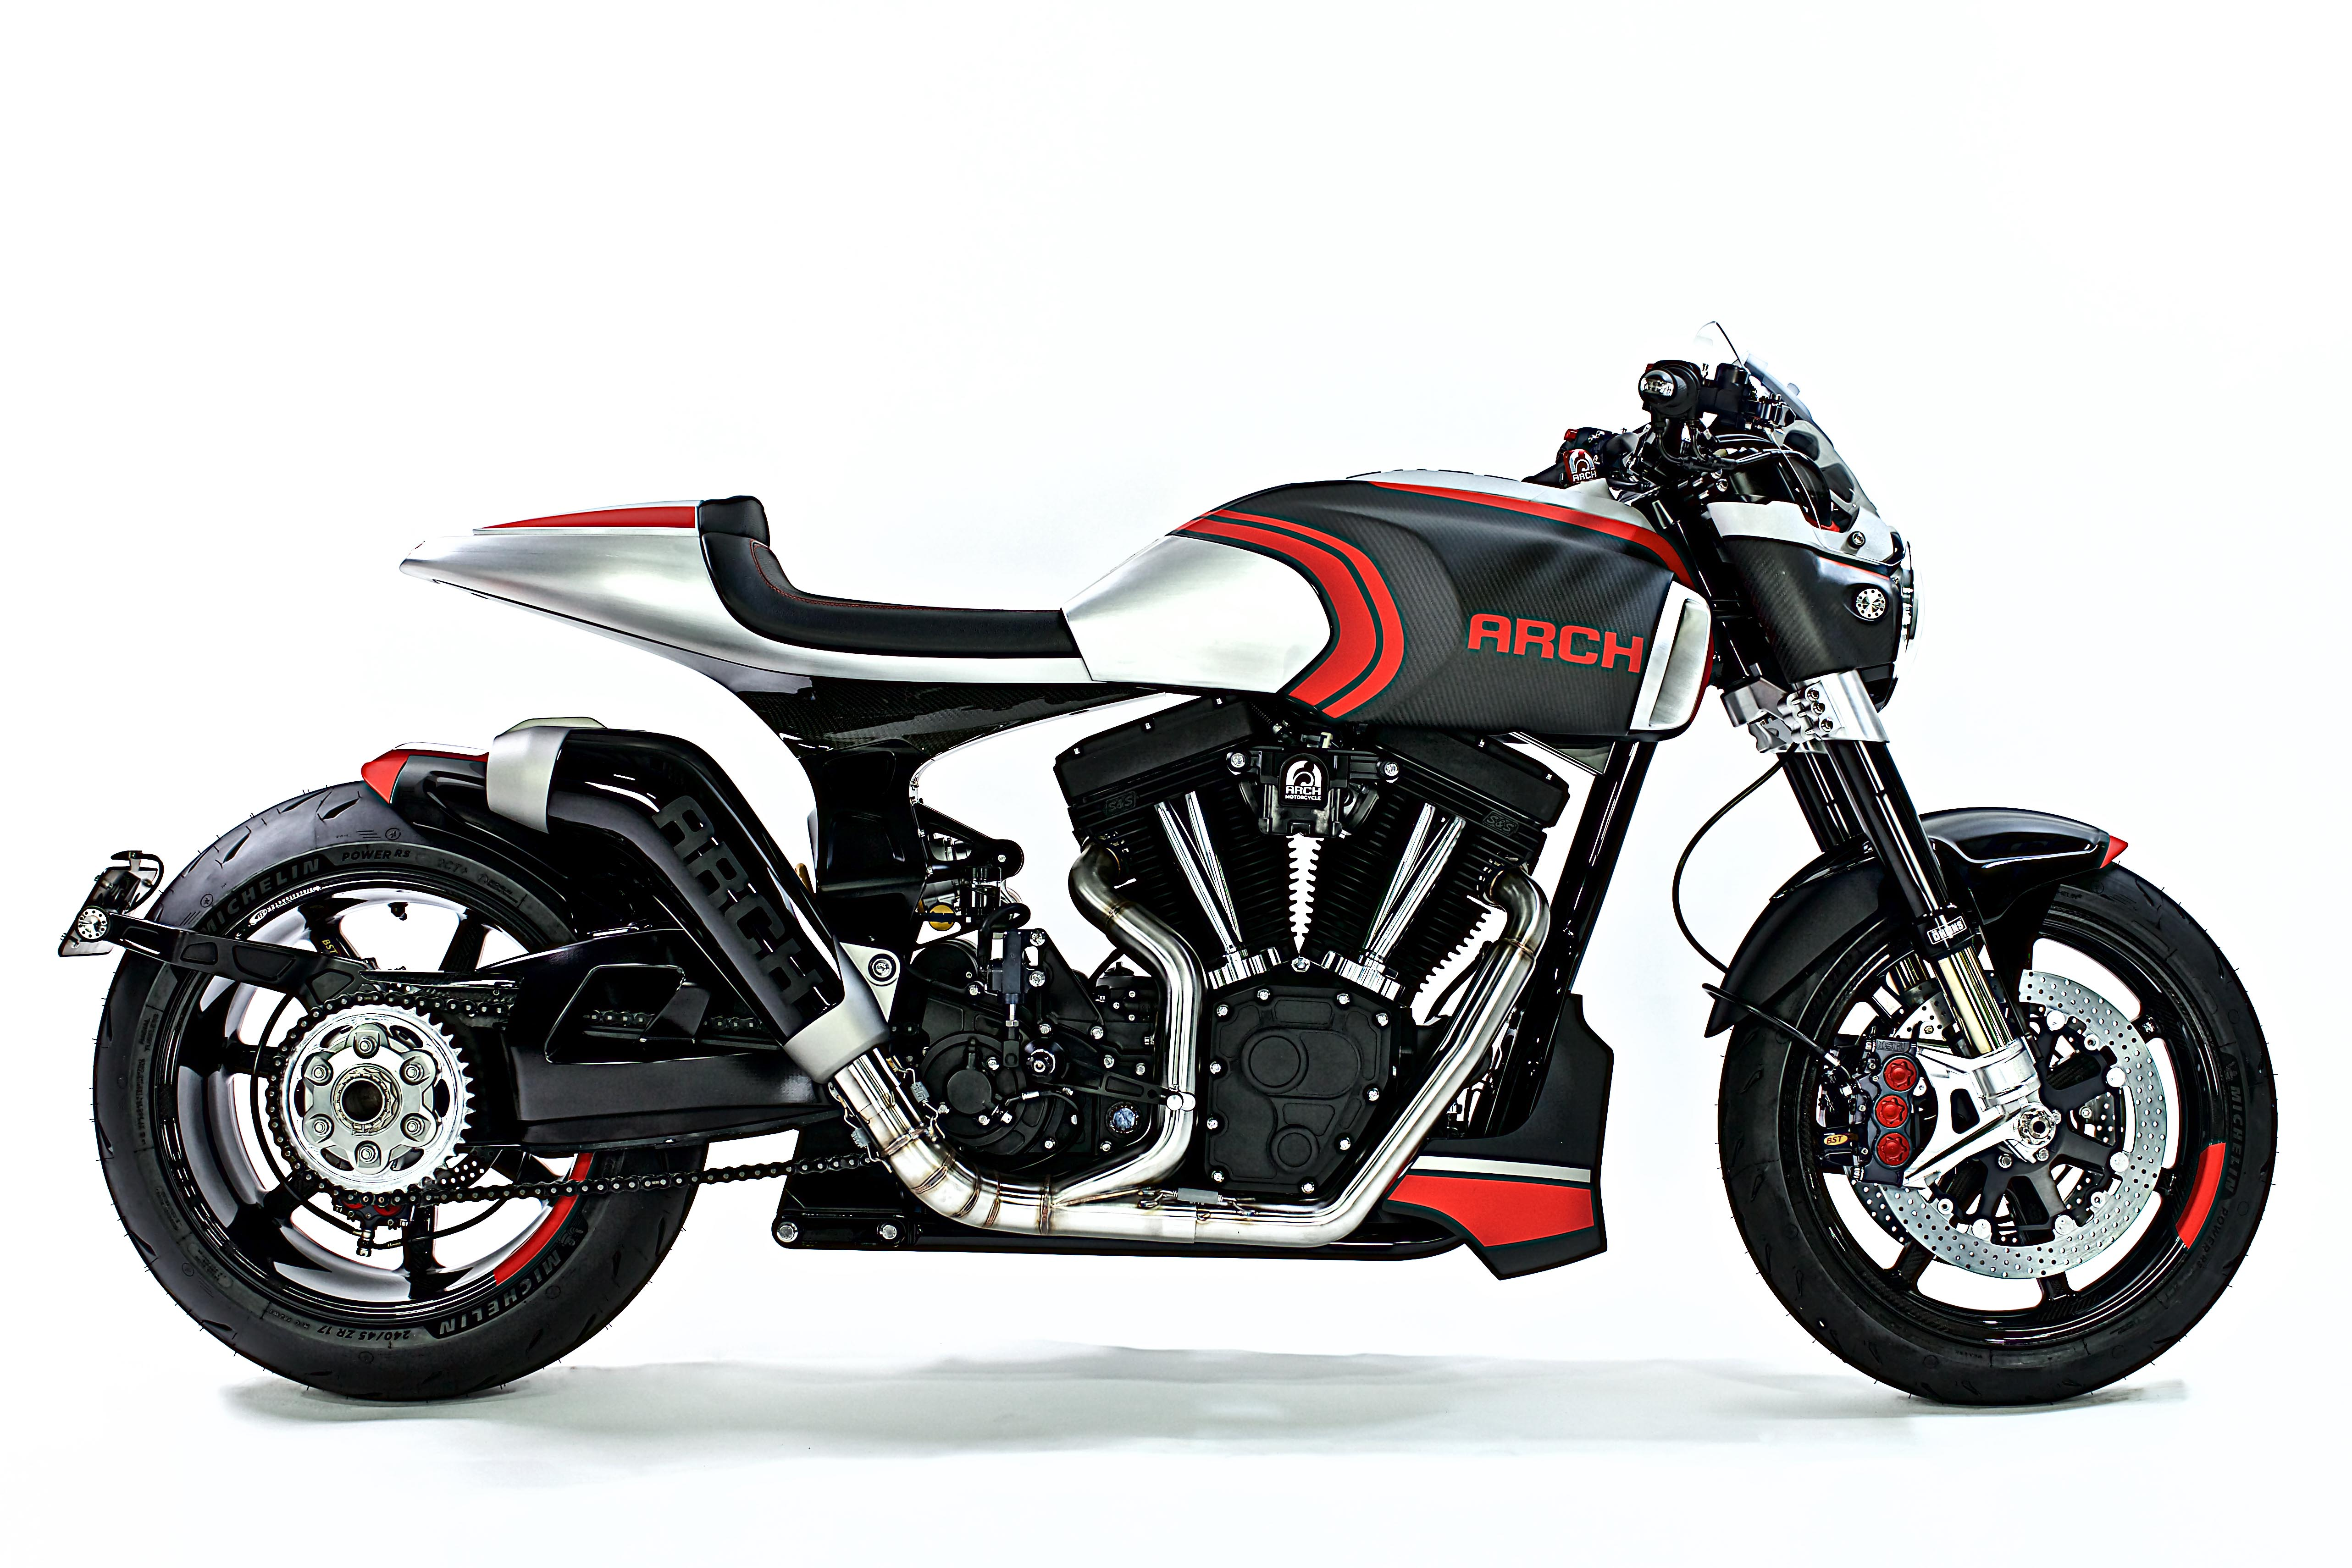 arch 1s motorcycle krgt motorcycles 143 method concept eicma bikes facts fast specs drive side custom cruiser pricing fiber carbon